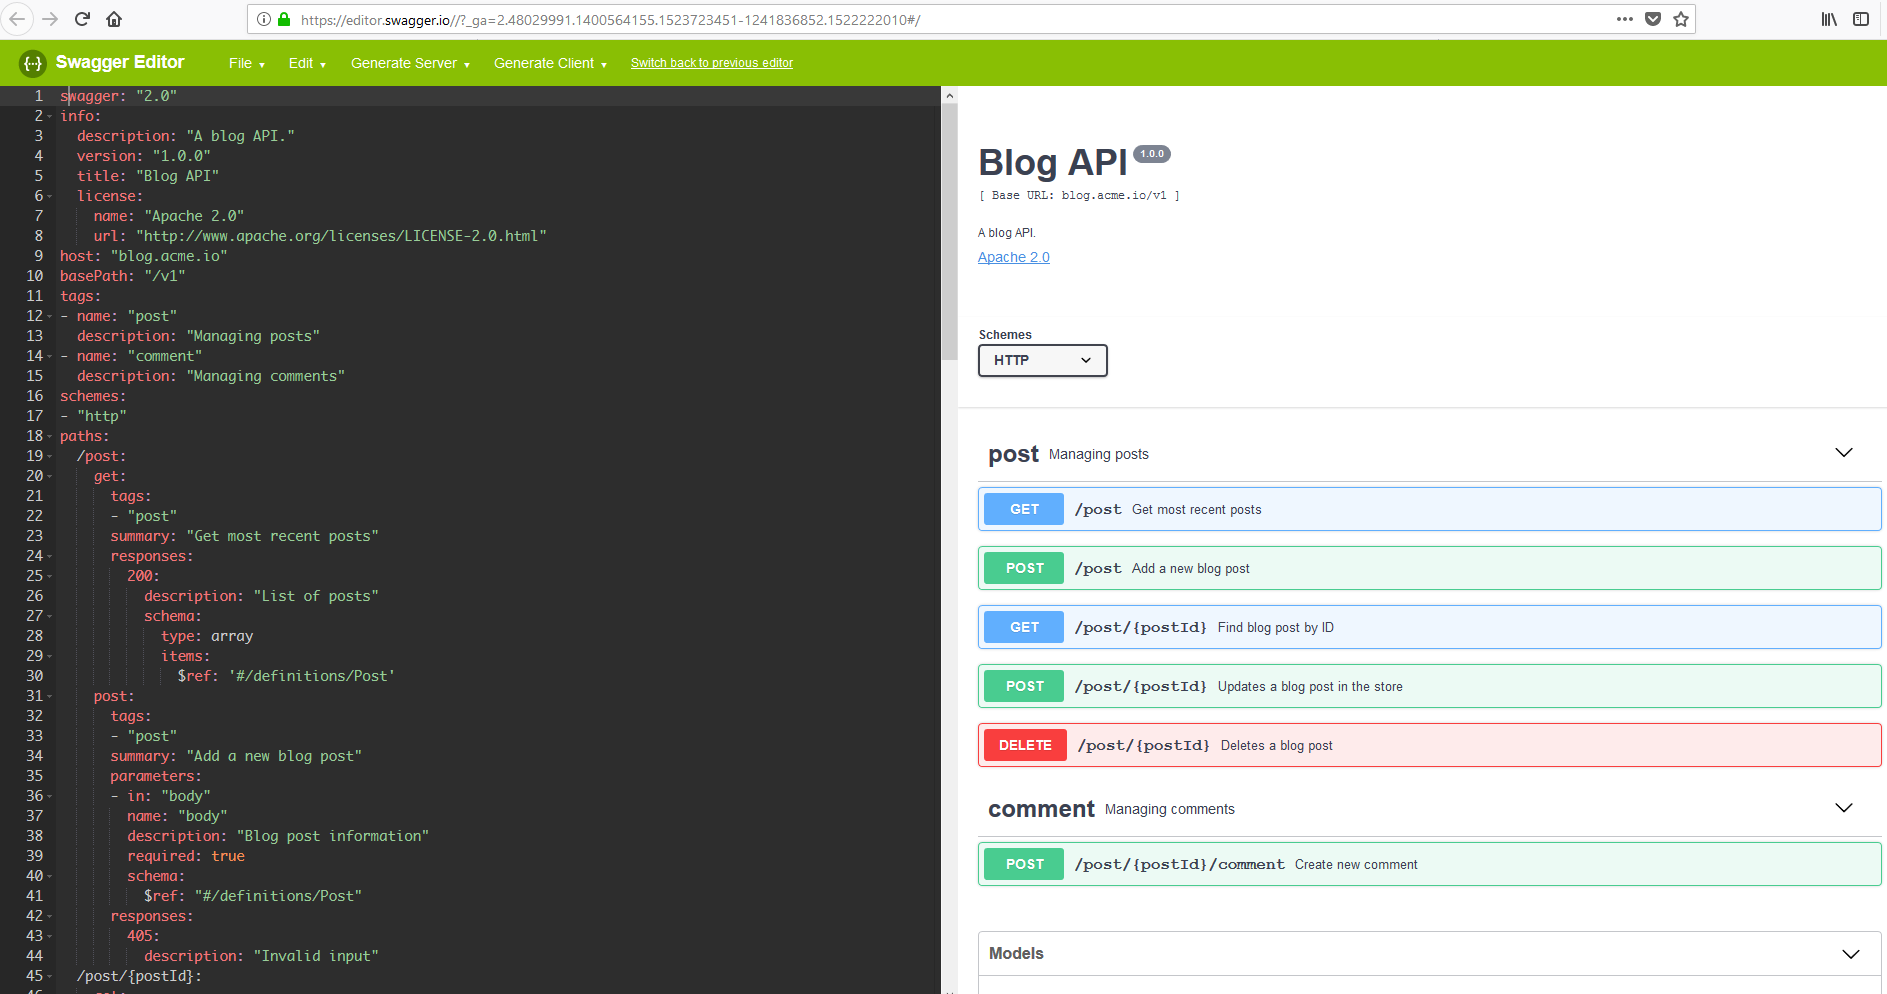 Building a REST API with Swagger and Spring Boot | ngeor com